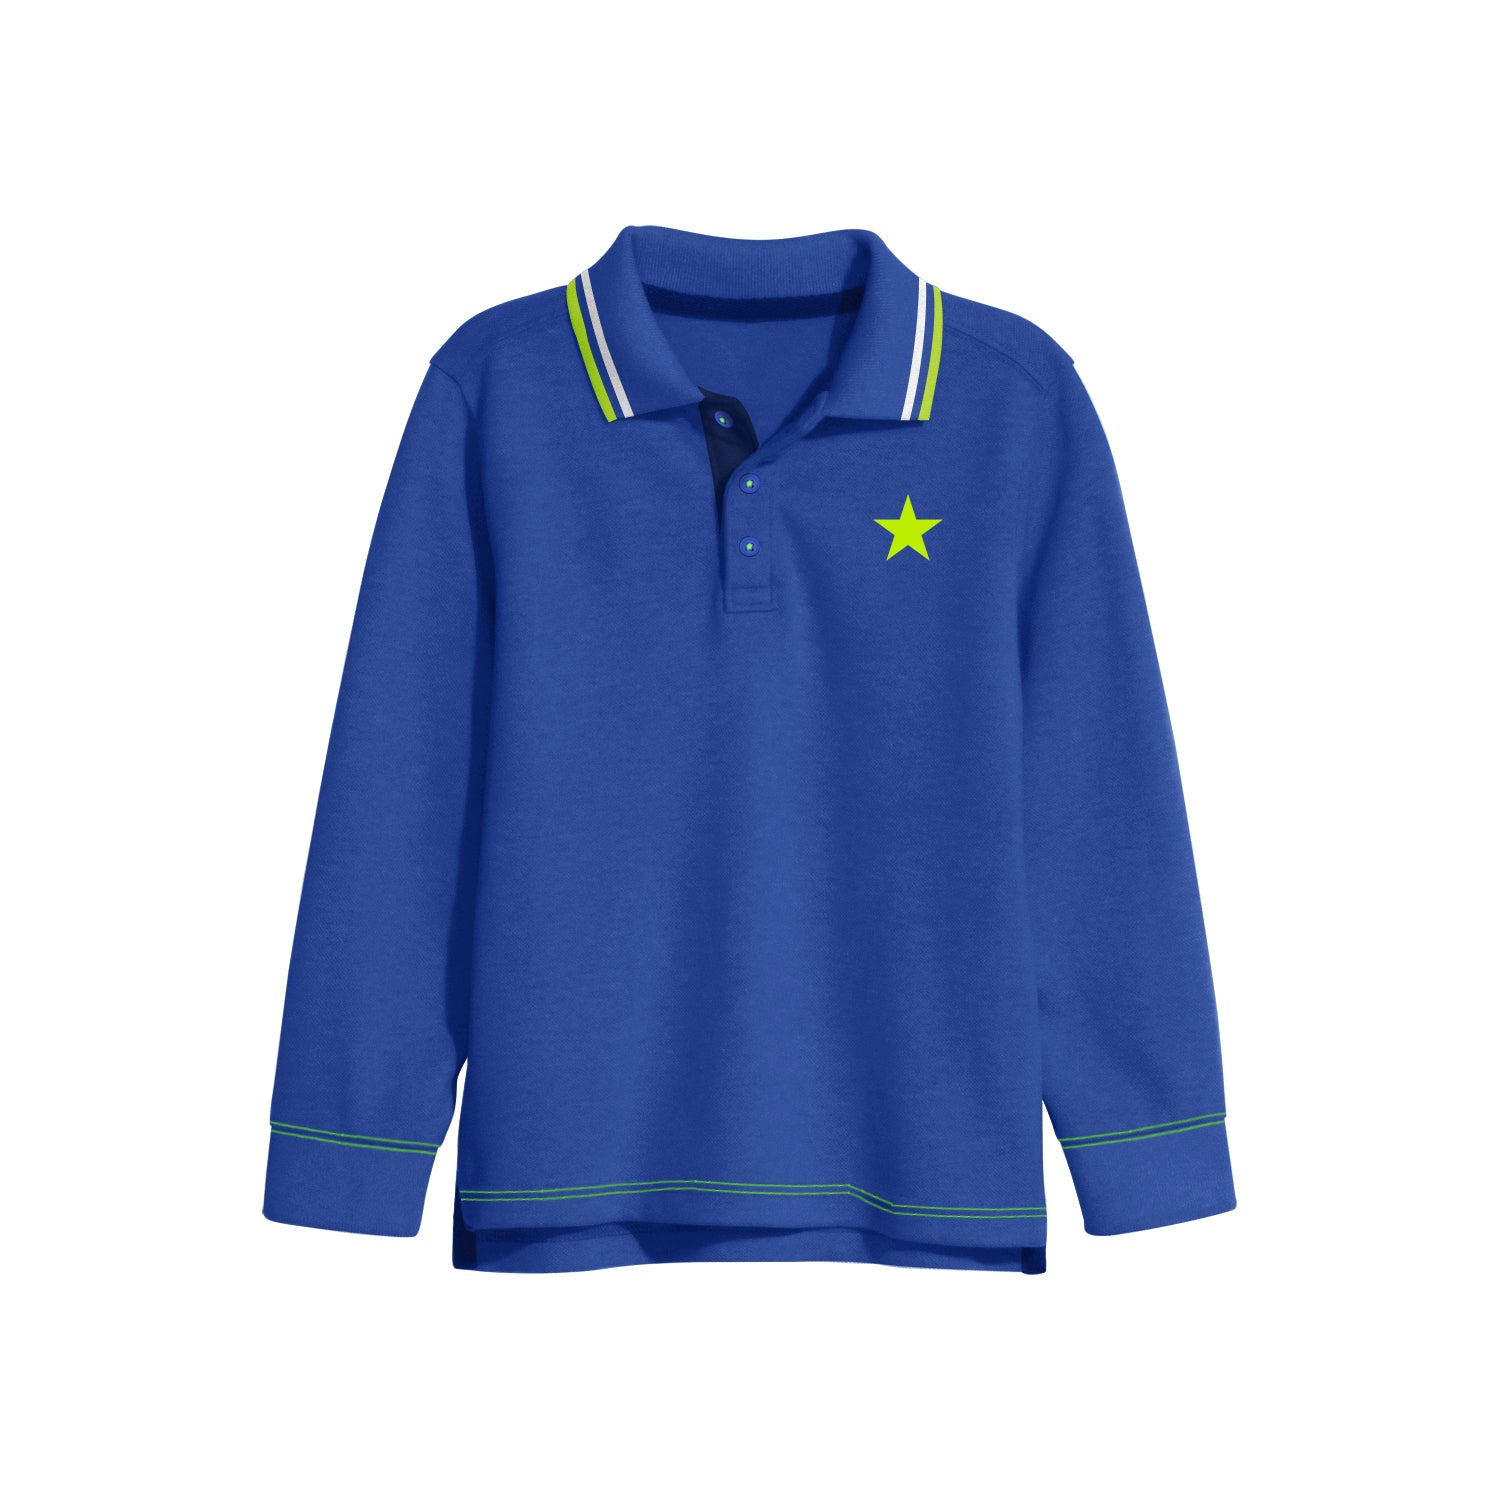 NEXT Single Jersey Polo Shirt For Kids-Dark Blue-BE9344